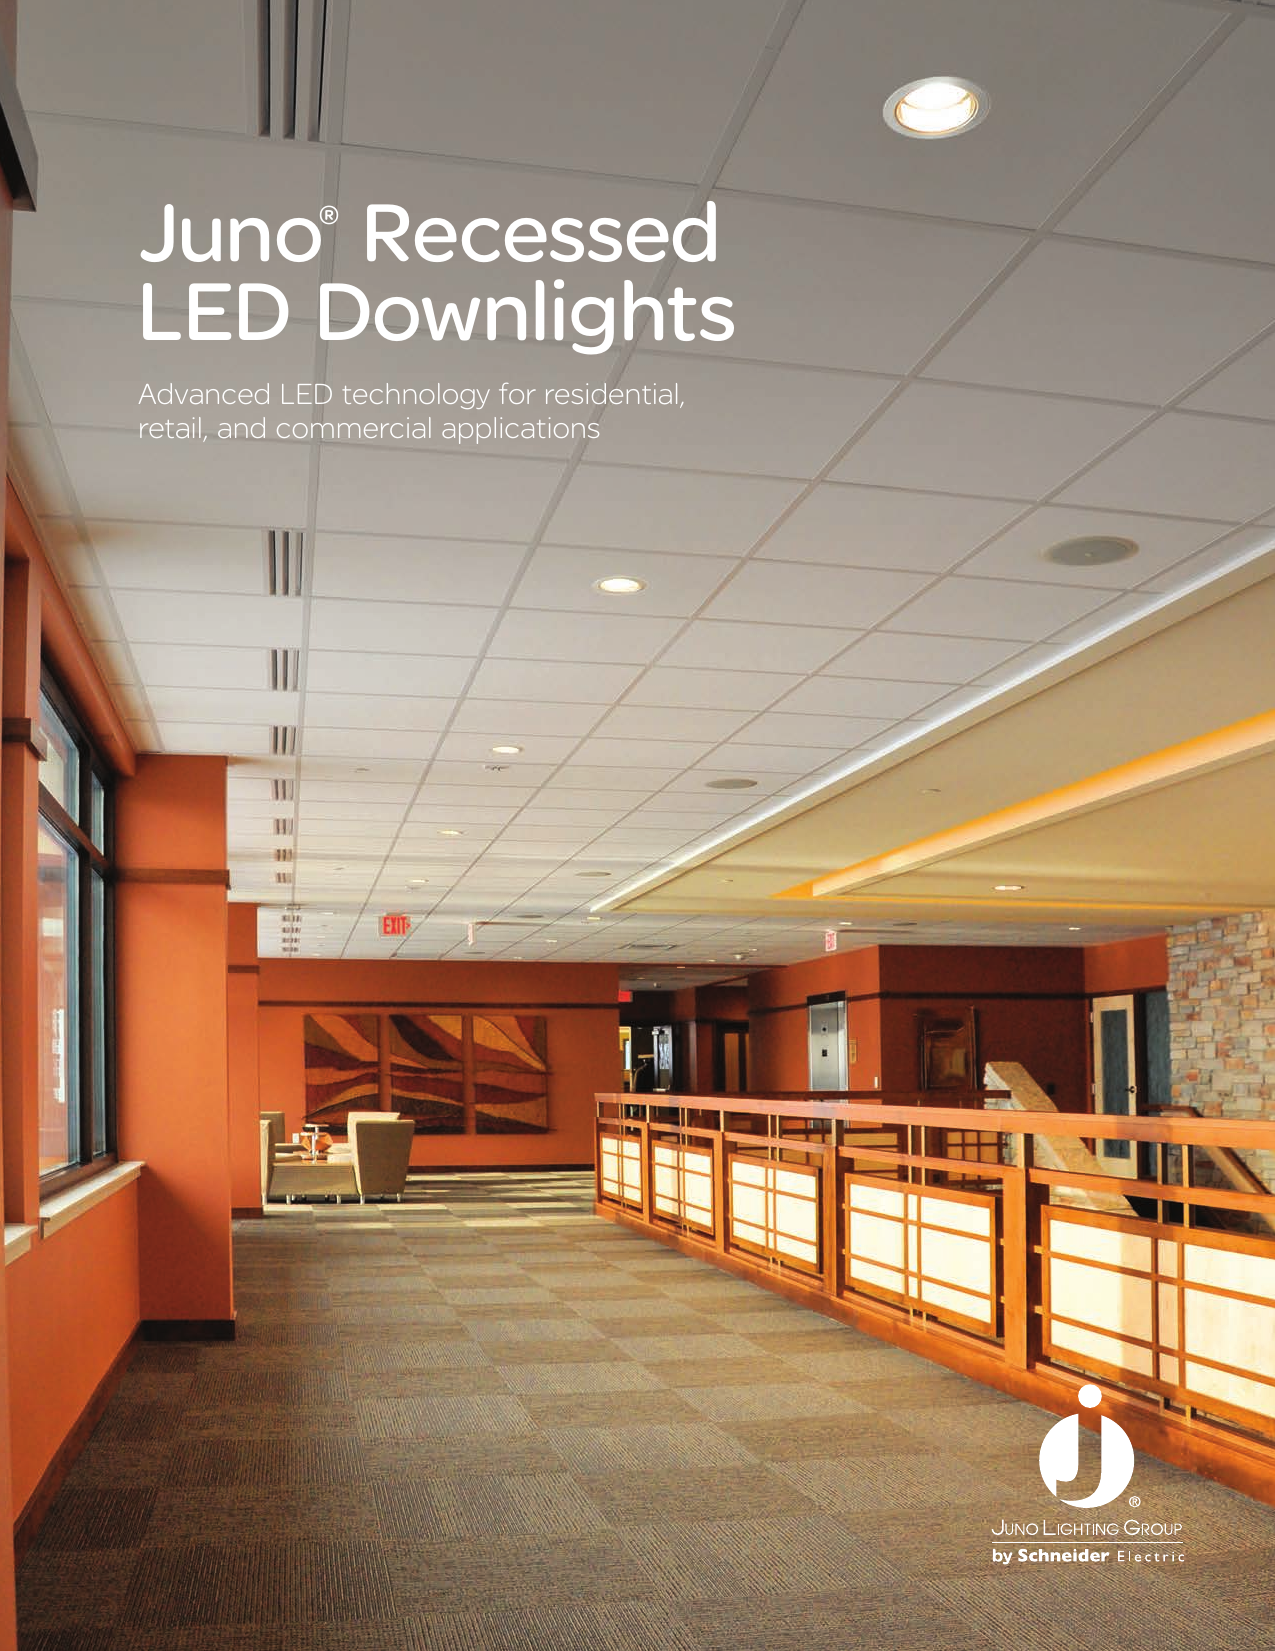 juno recessed led downlights